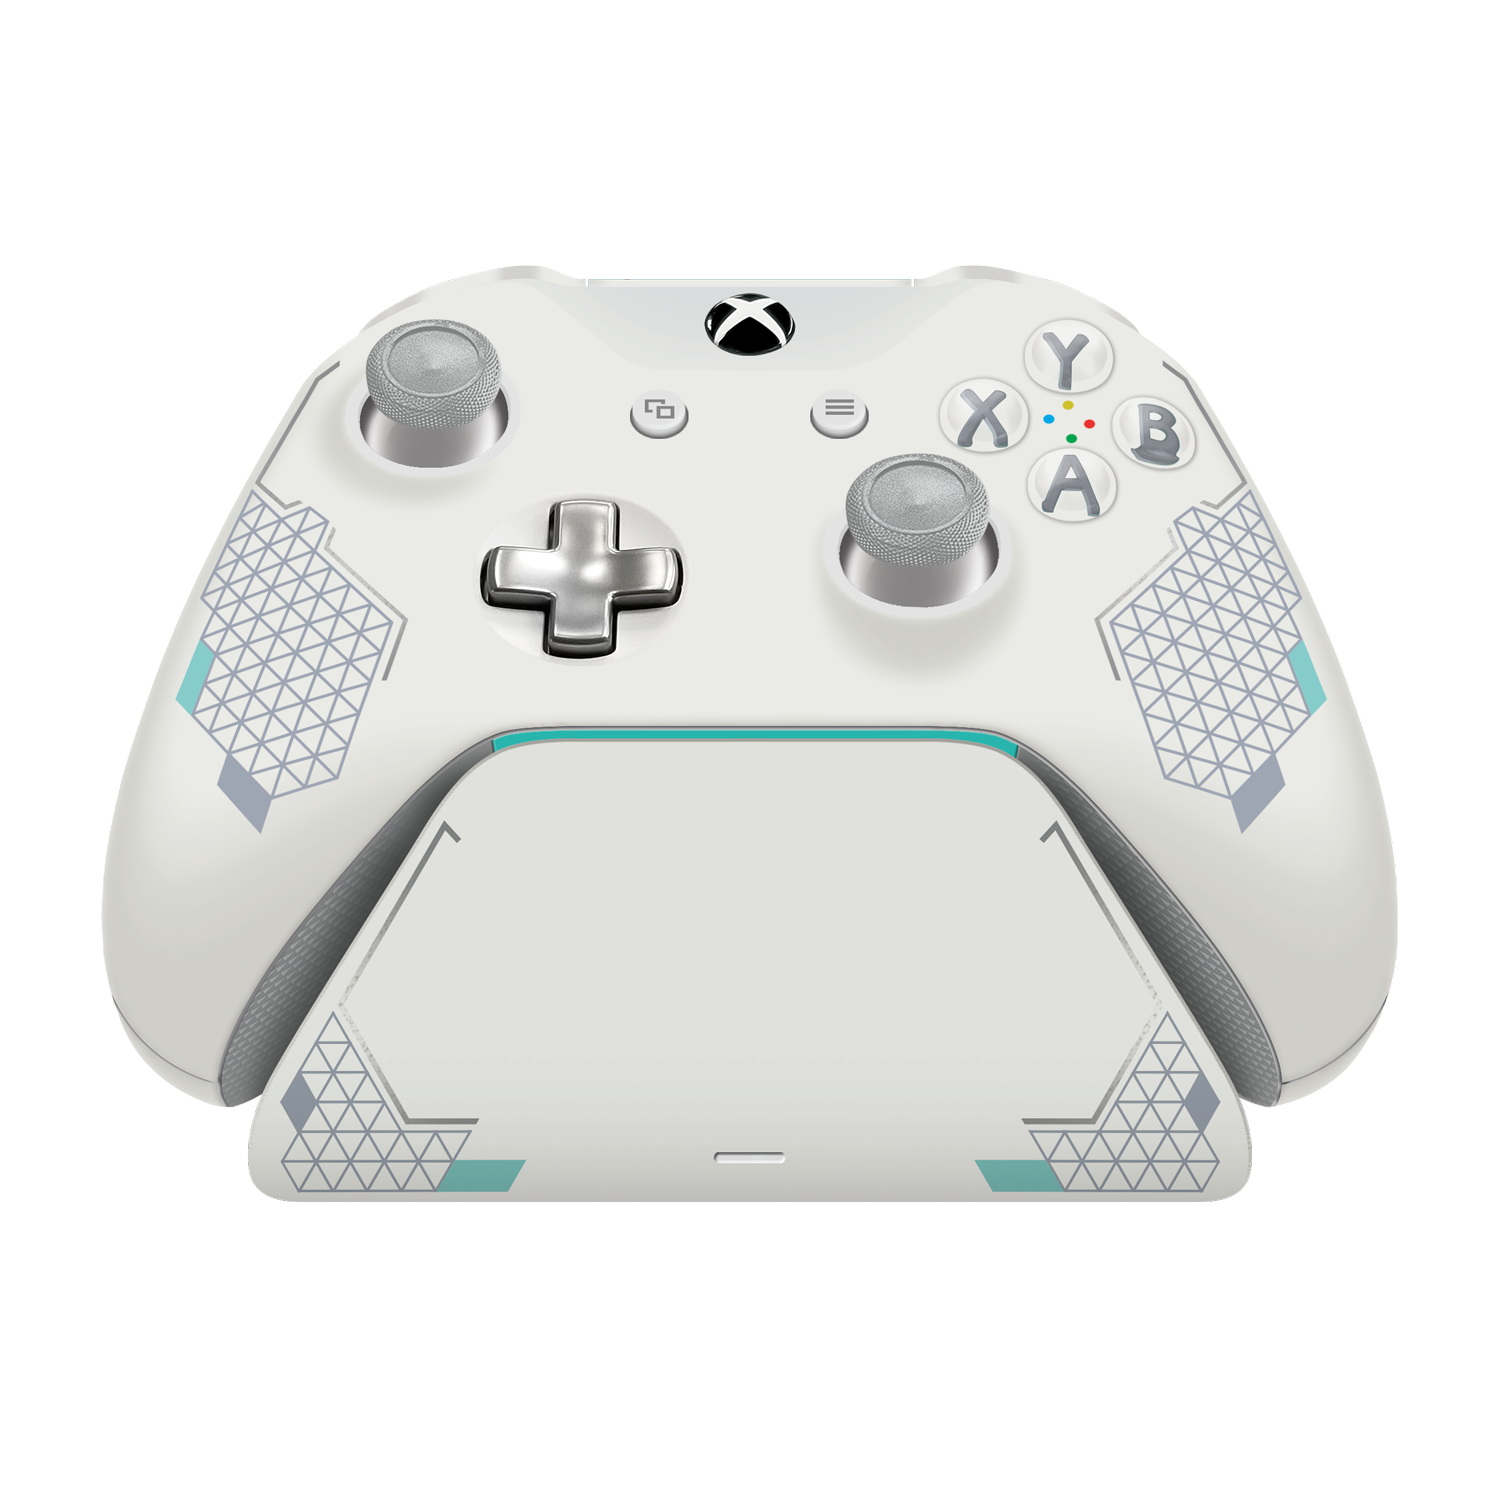 Sport White Special Edition Xbox Pro Charging Stand  Exact match to your  Xbox One Sport White Controller  Officially Licensed and Designed for Xbox